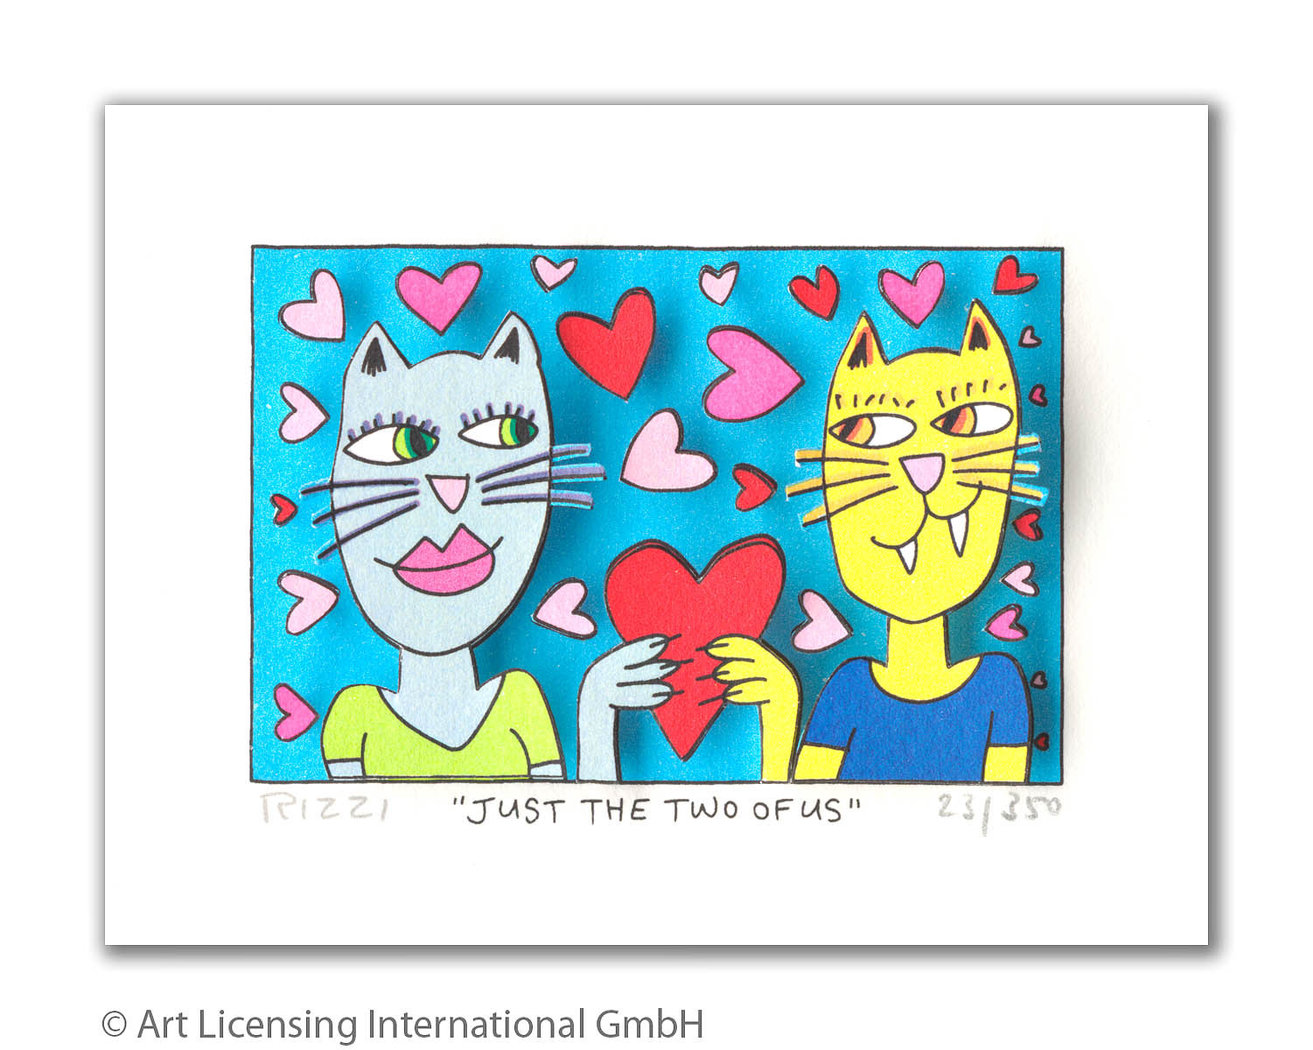 James Rizzi - JUST THE TWO OF US